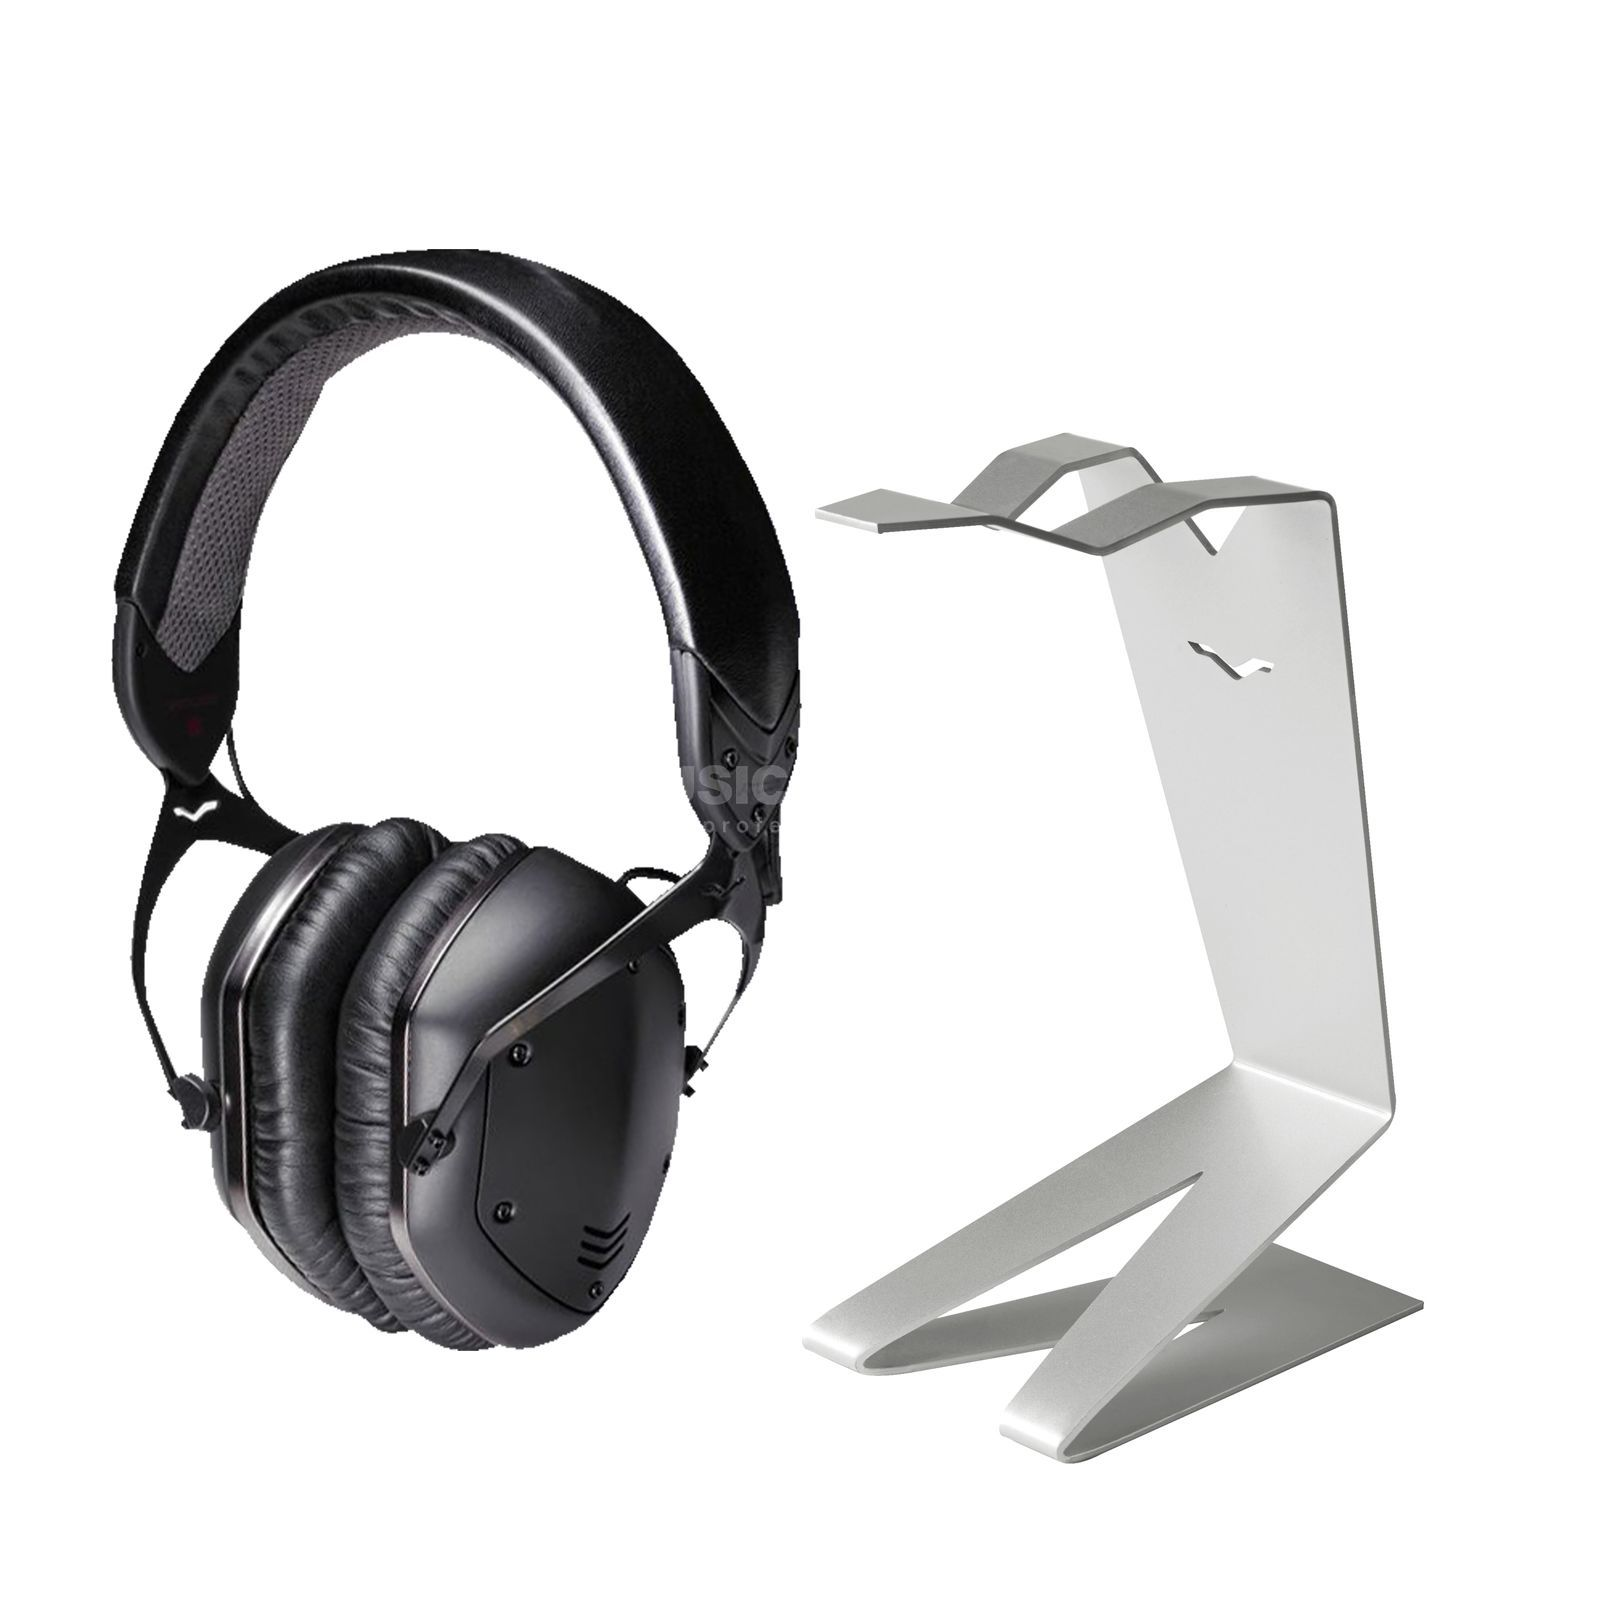 Mixars DUO MKII + RP-7000 MK2 - Set Product Image